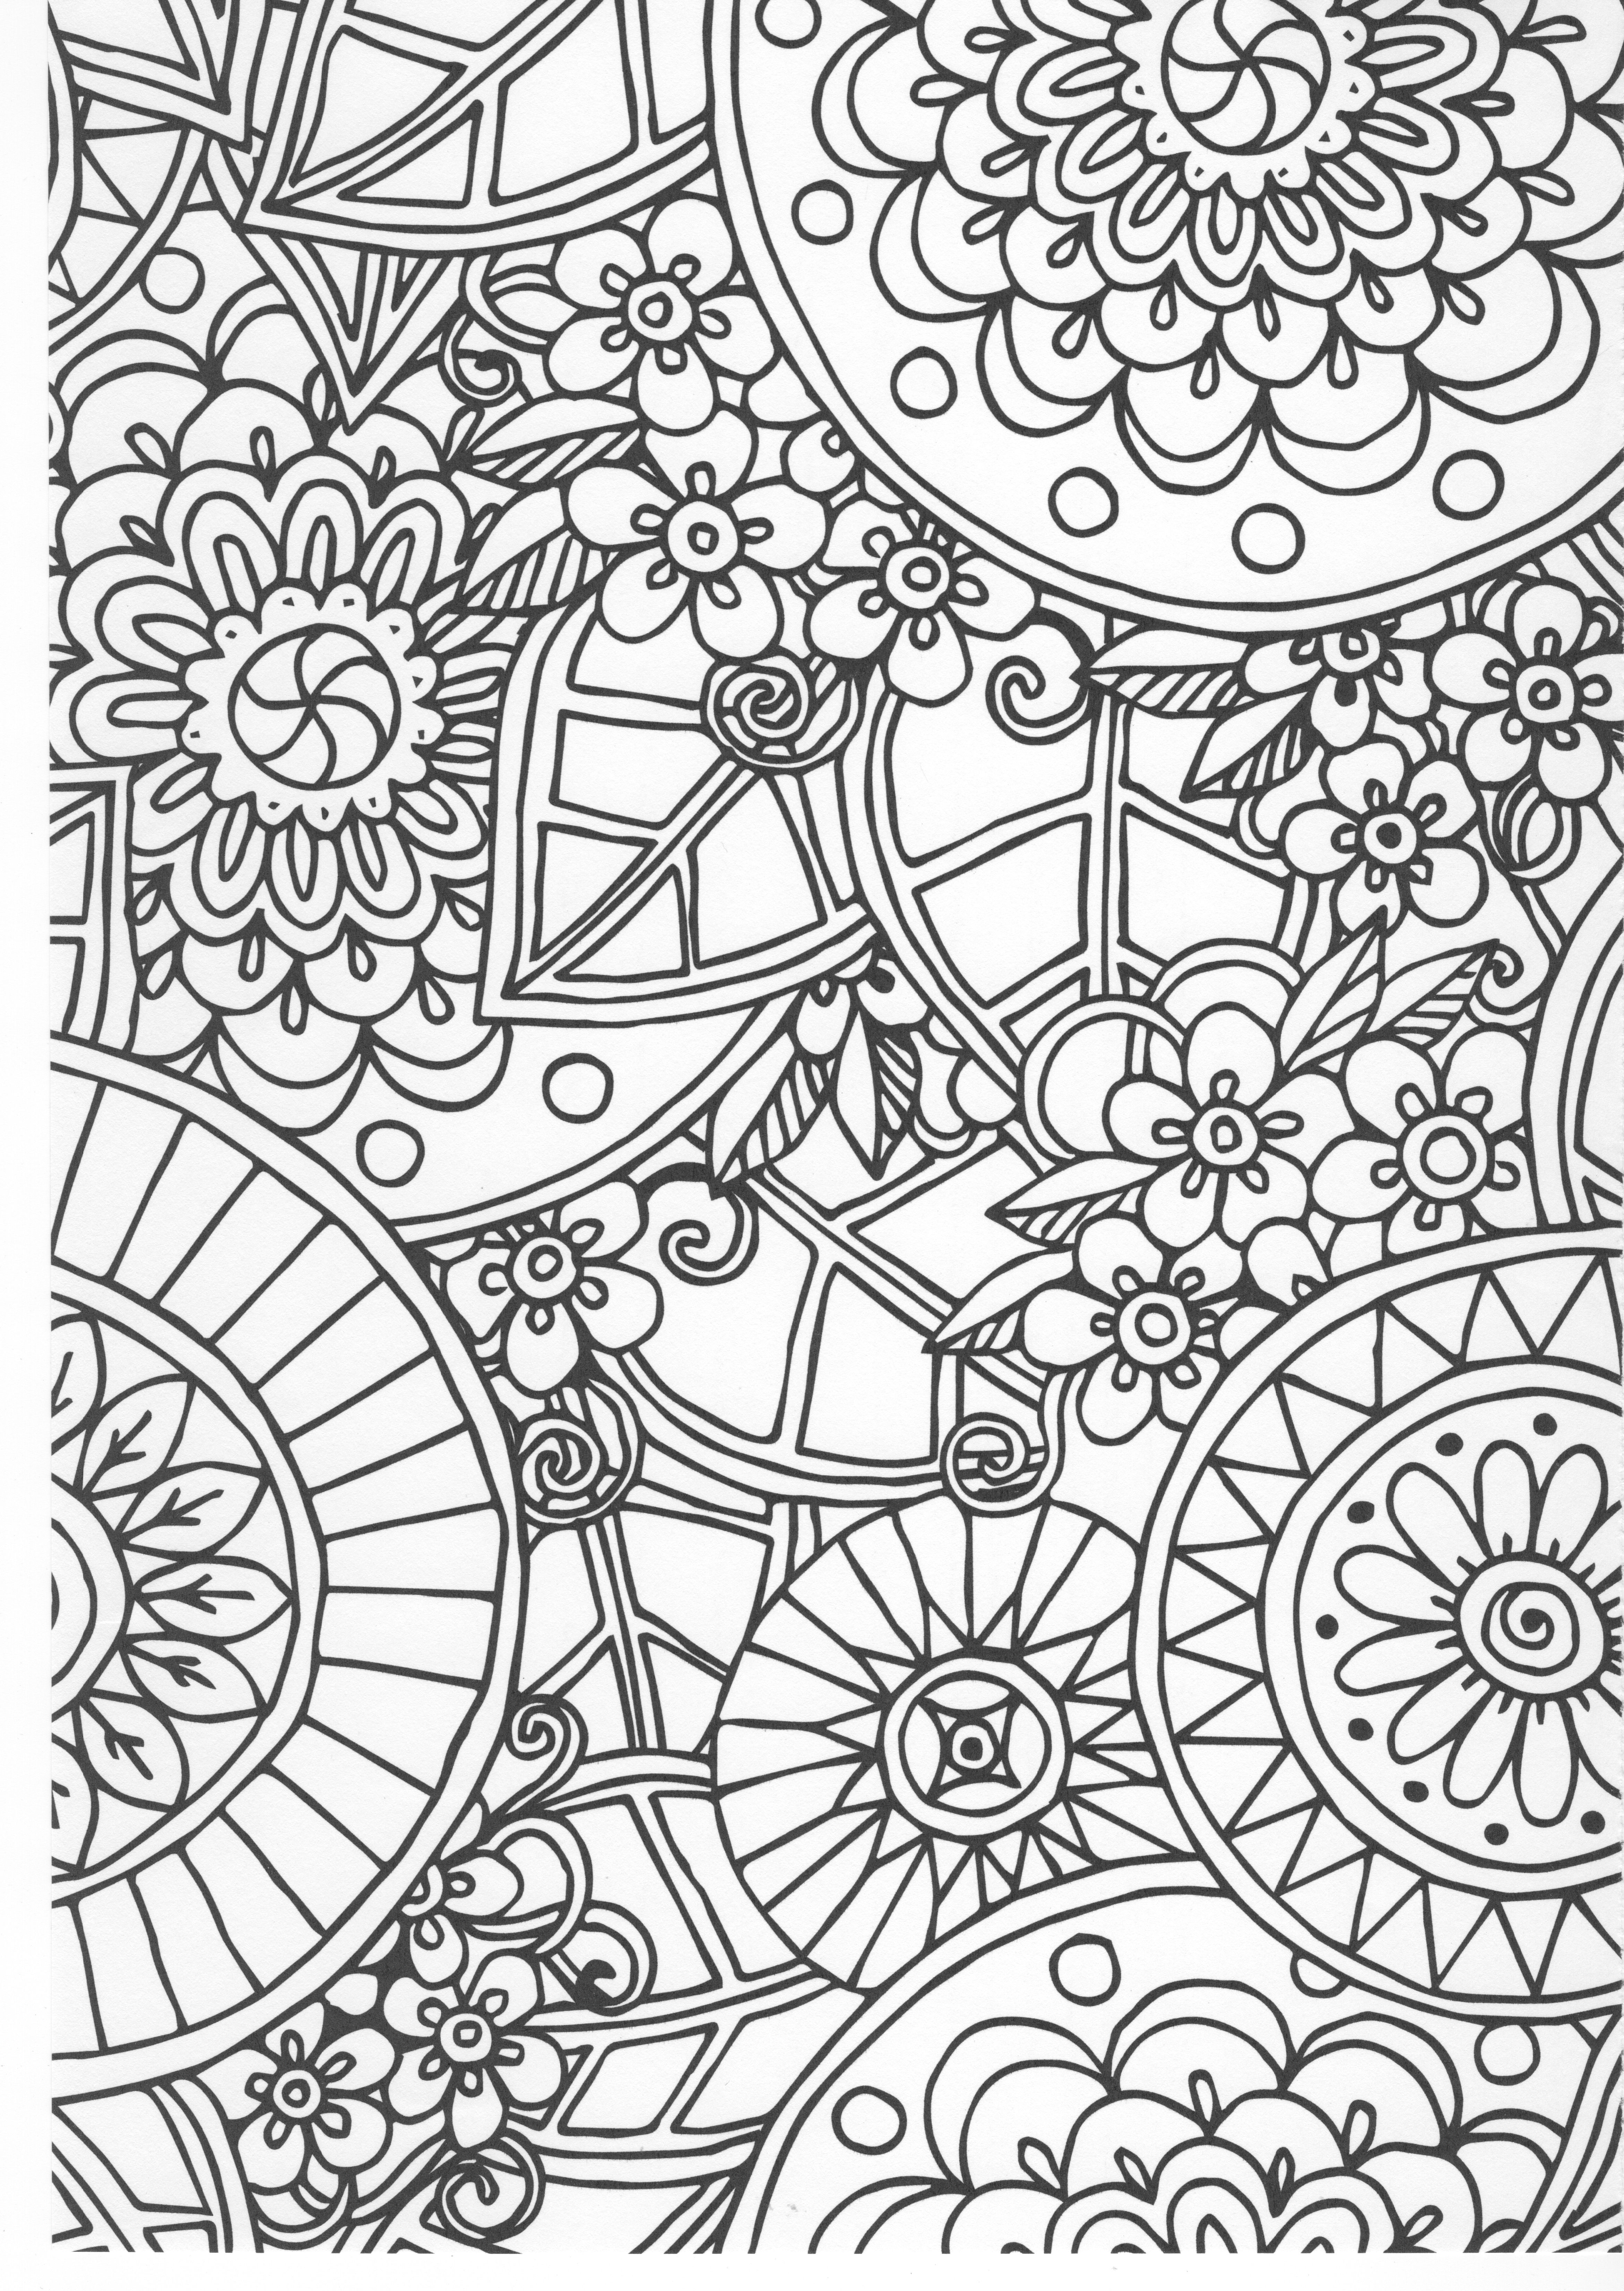 Pin By Cindy Hamm On Coloring